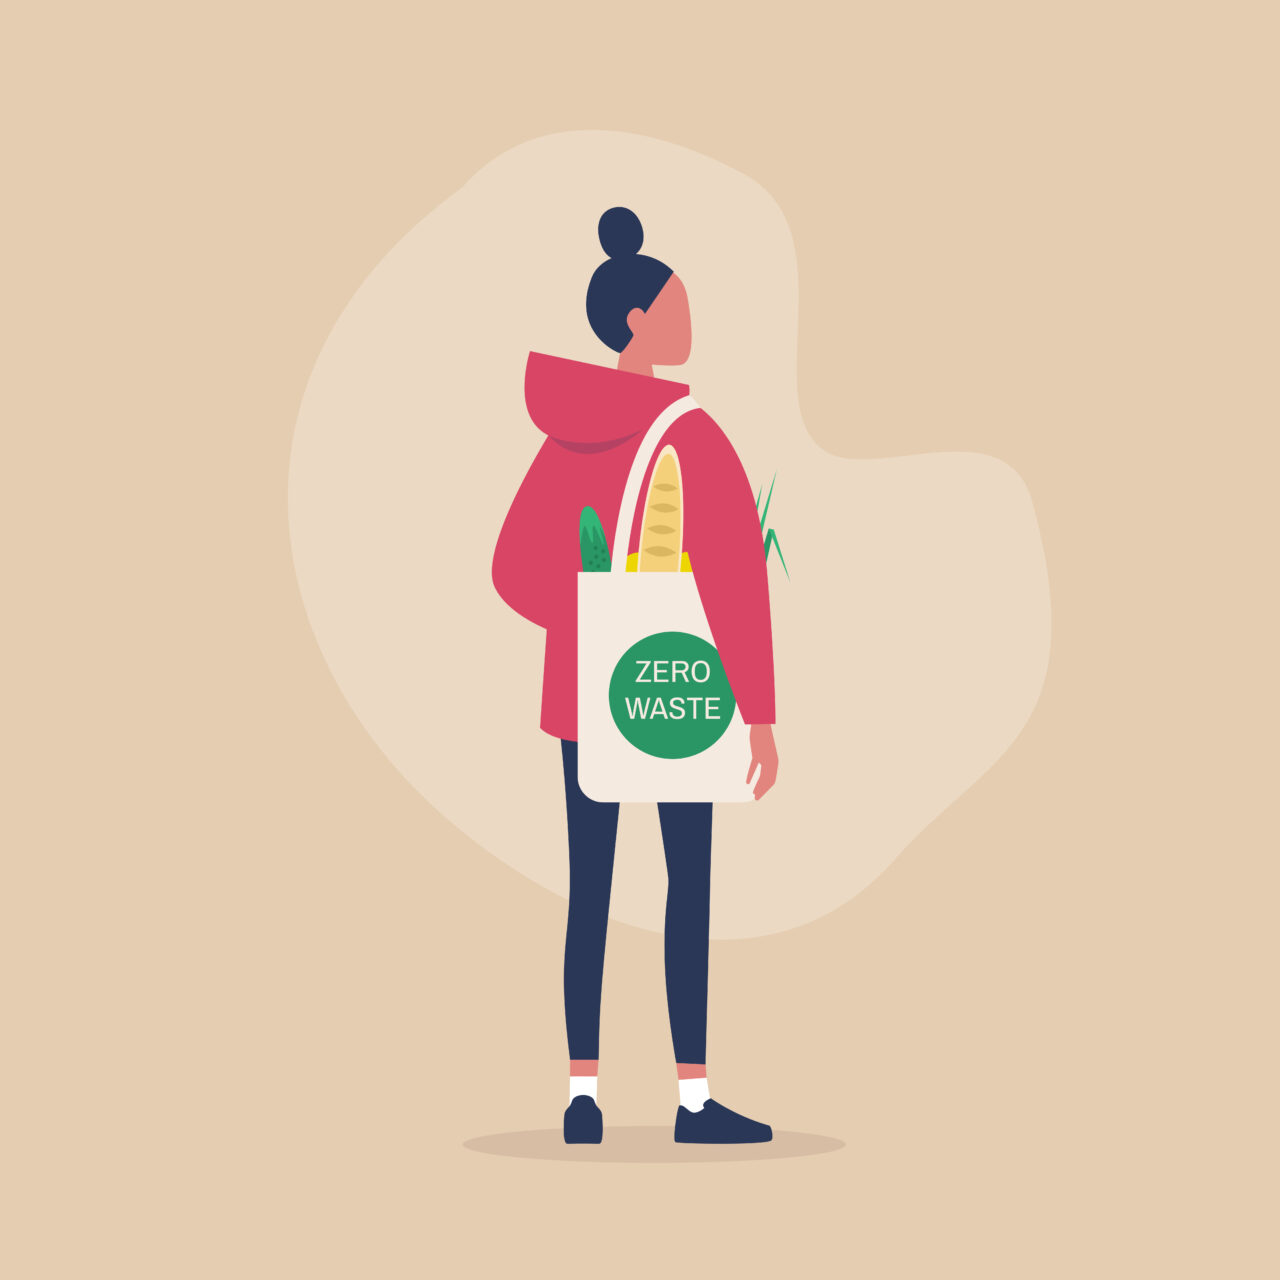 The conscious consumer holds a bag with a tag Zero Waste.